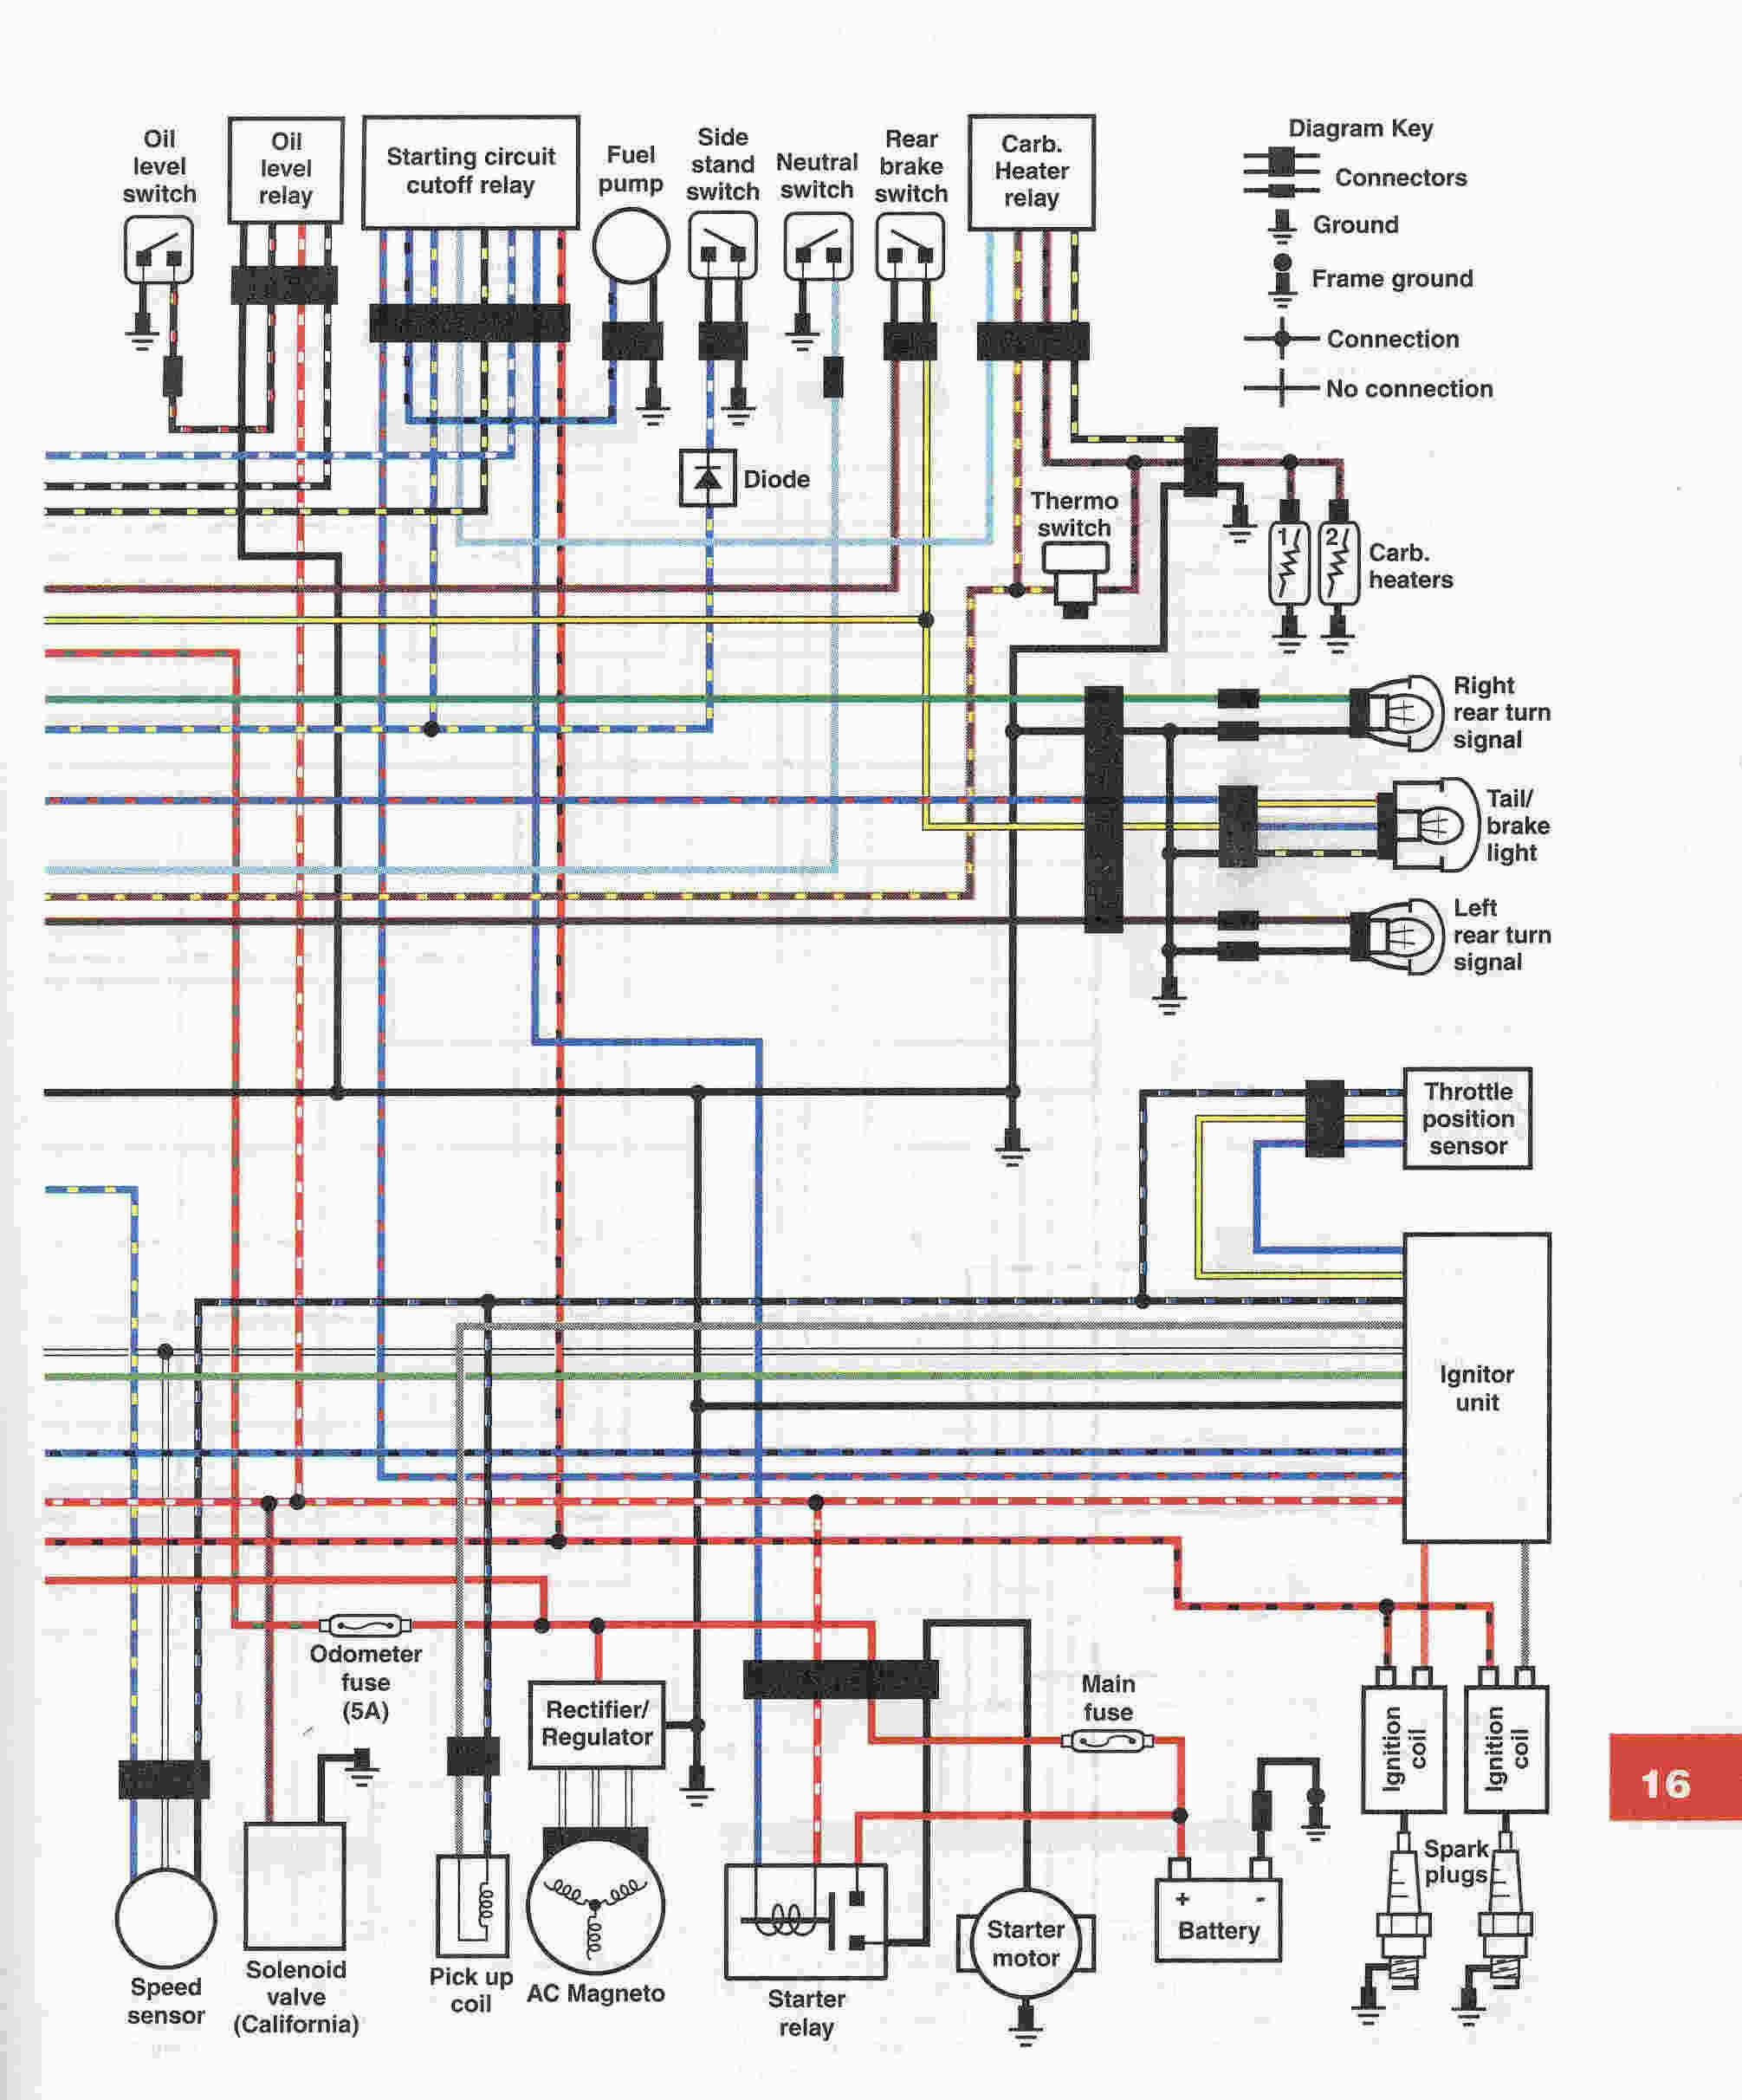 2001 Yamaha Blaster Wiring Diagram from www.sloneservices.com